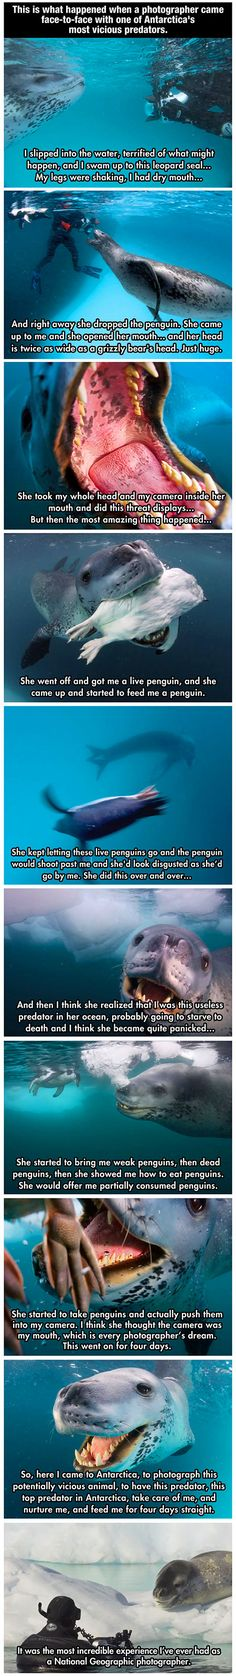 Photographer Paul Nicklen Encounters Vicious Antarctic Predator, the Leopard Seal. Animals have this innate desire to help each other... I love this